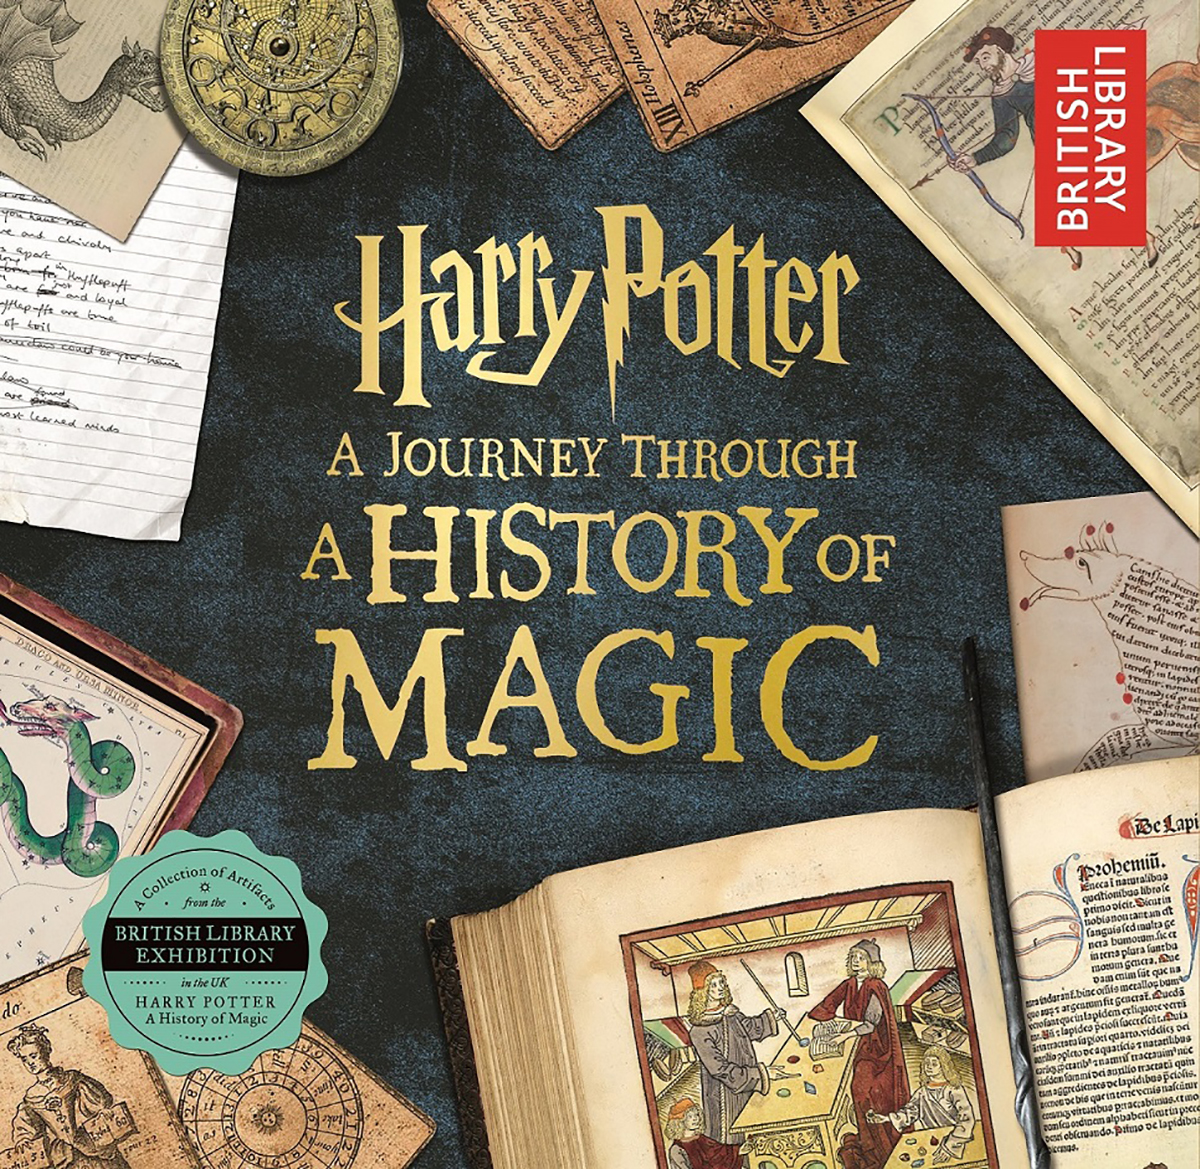 HarryPotter_AJourneyThroughAHistoryOfMagic_Cover_Flat_HiRes